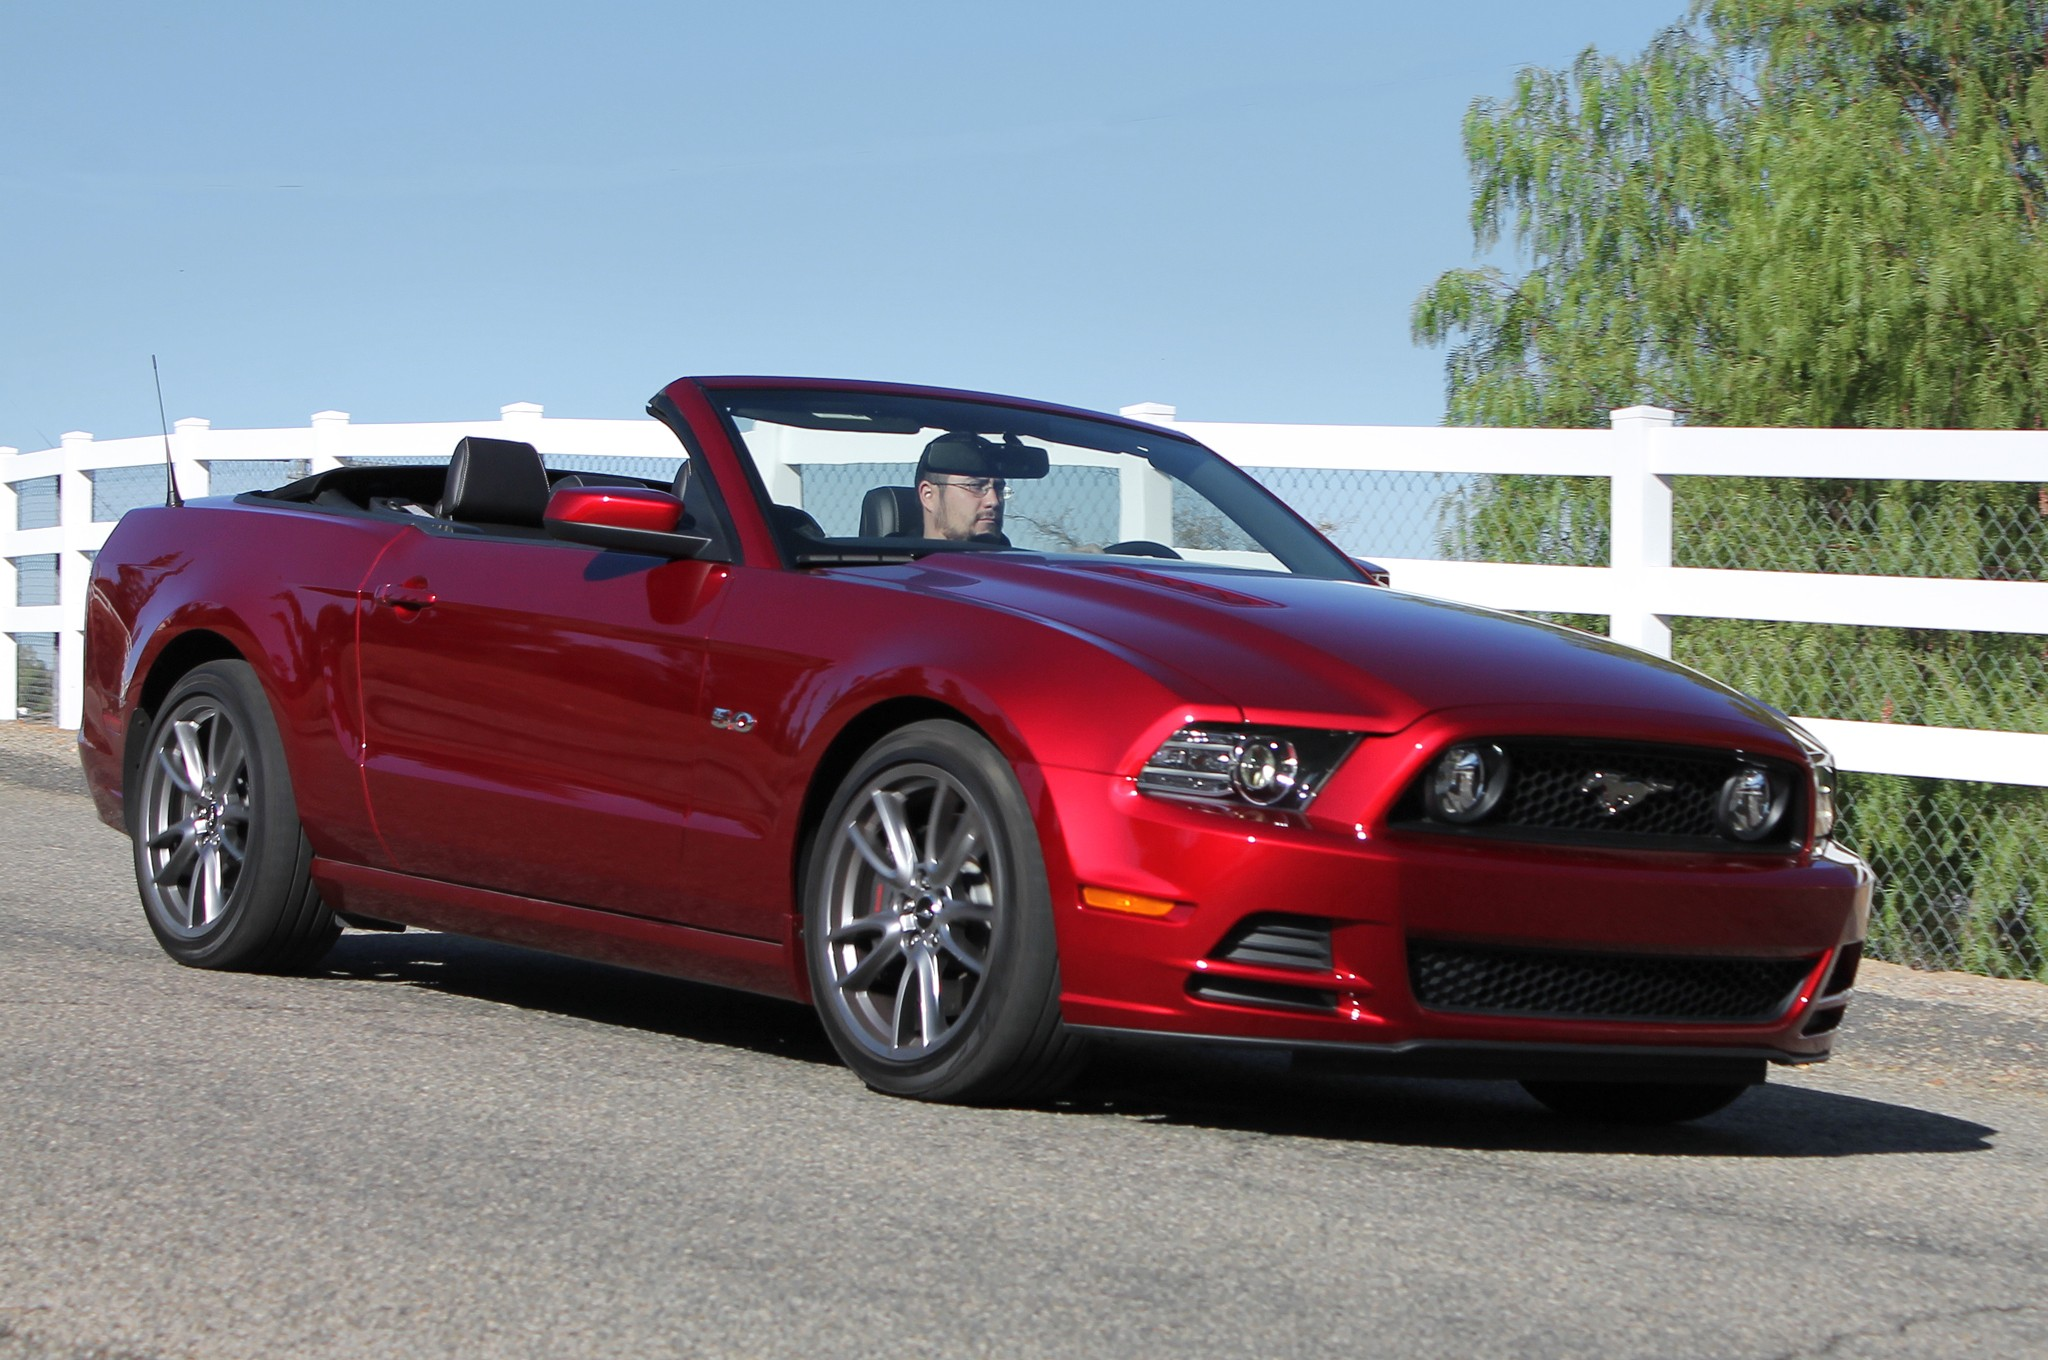 2014 ford mustang v8 convertible front view in motion. Black Bedroom Furniture Sets. Home Design Ideas